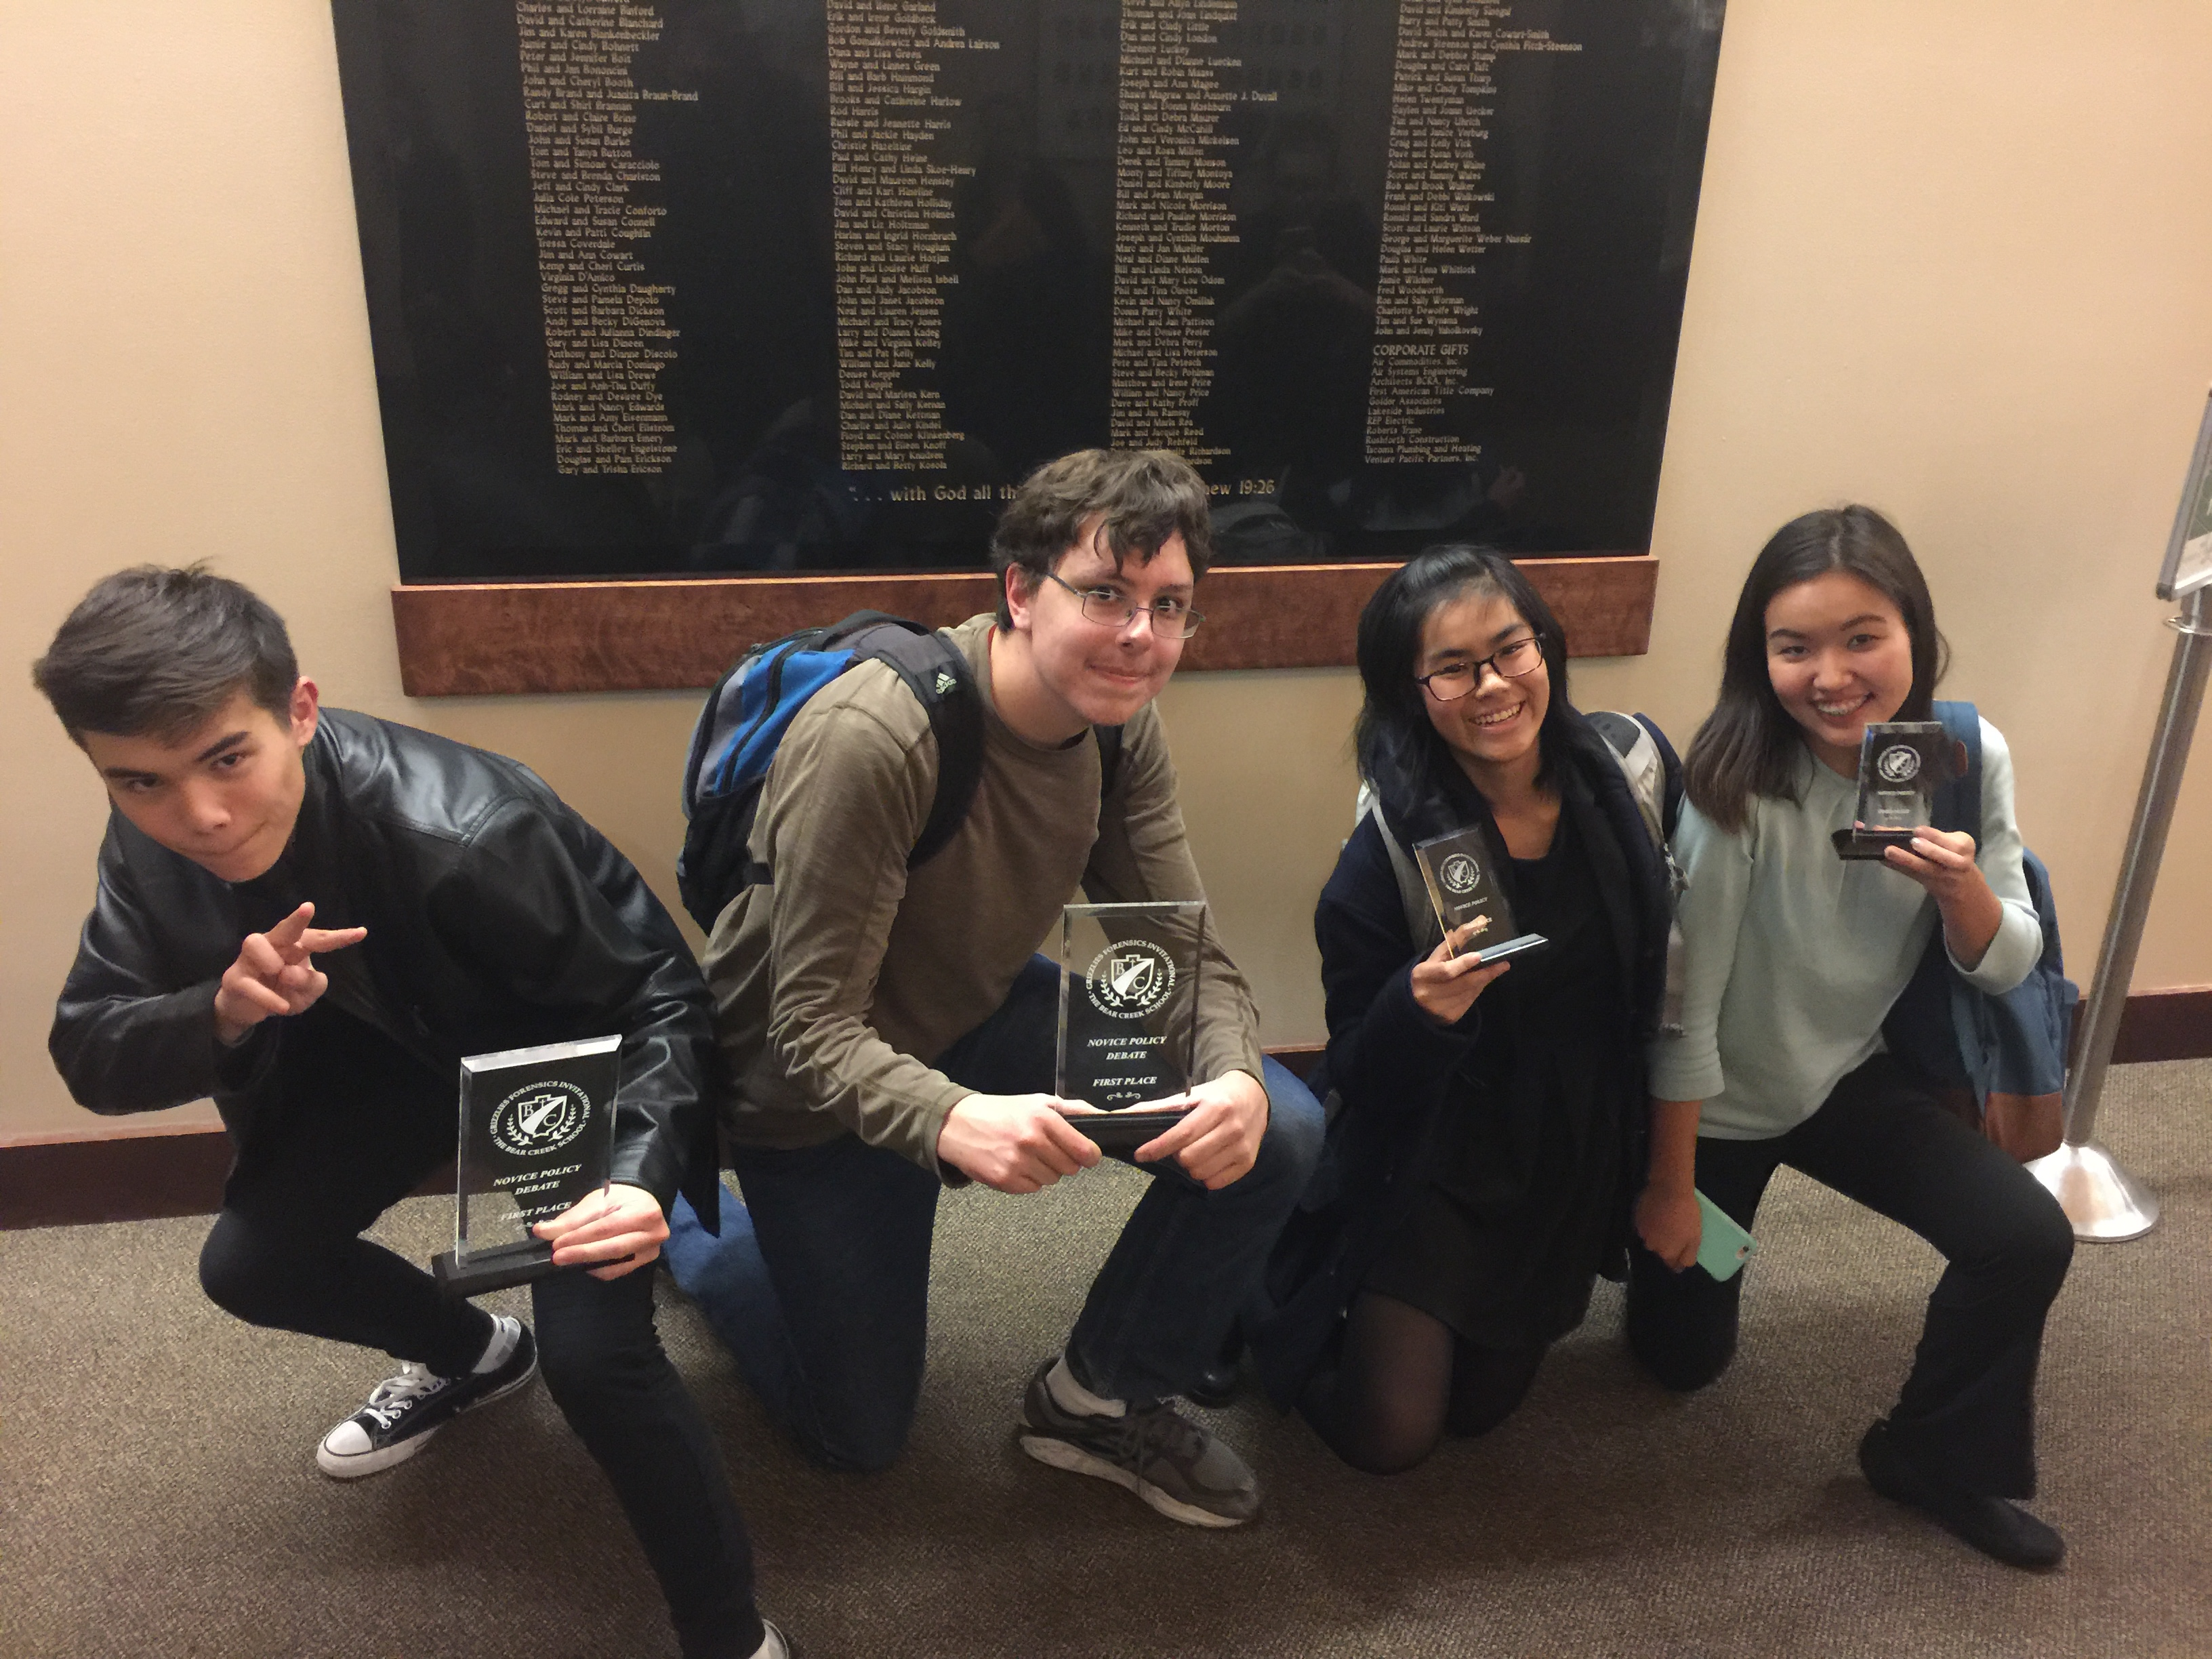 Novice debaters with their Bear Creek trophies